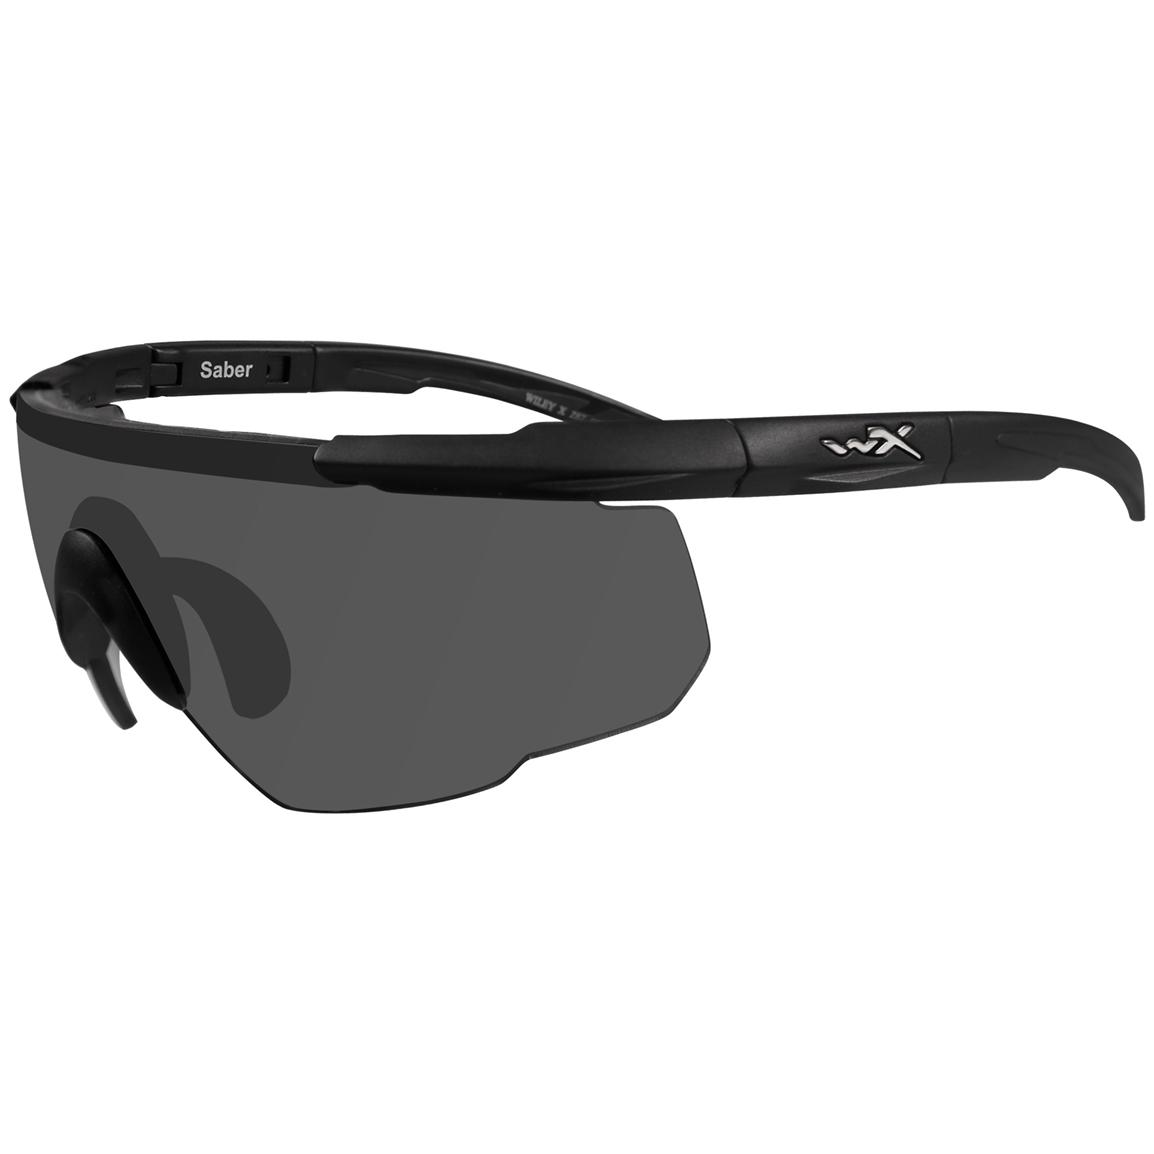 Wiley X® Saber Advanced Sunglasses, Single Lens Package, Smoke Grey